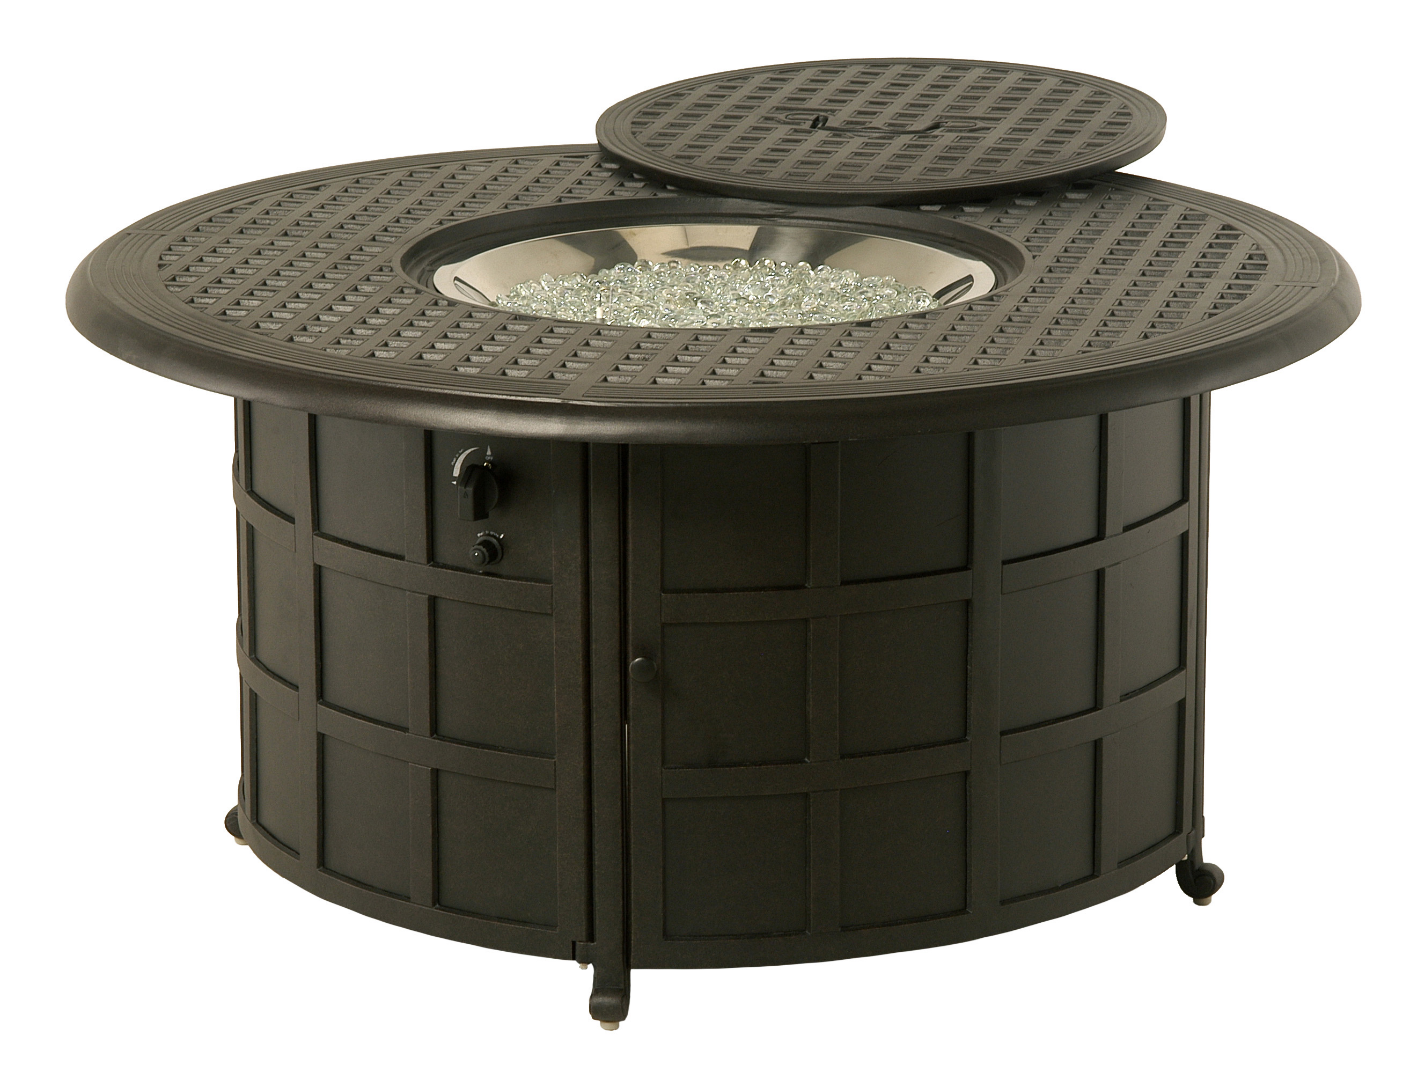 Somerset Fire Pit